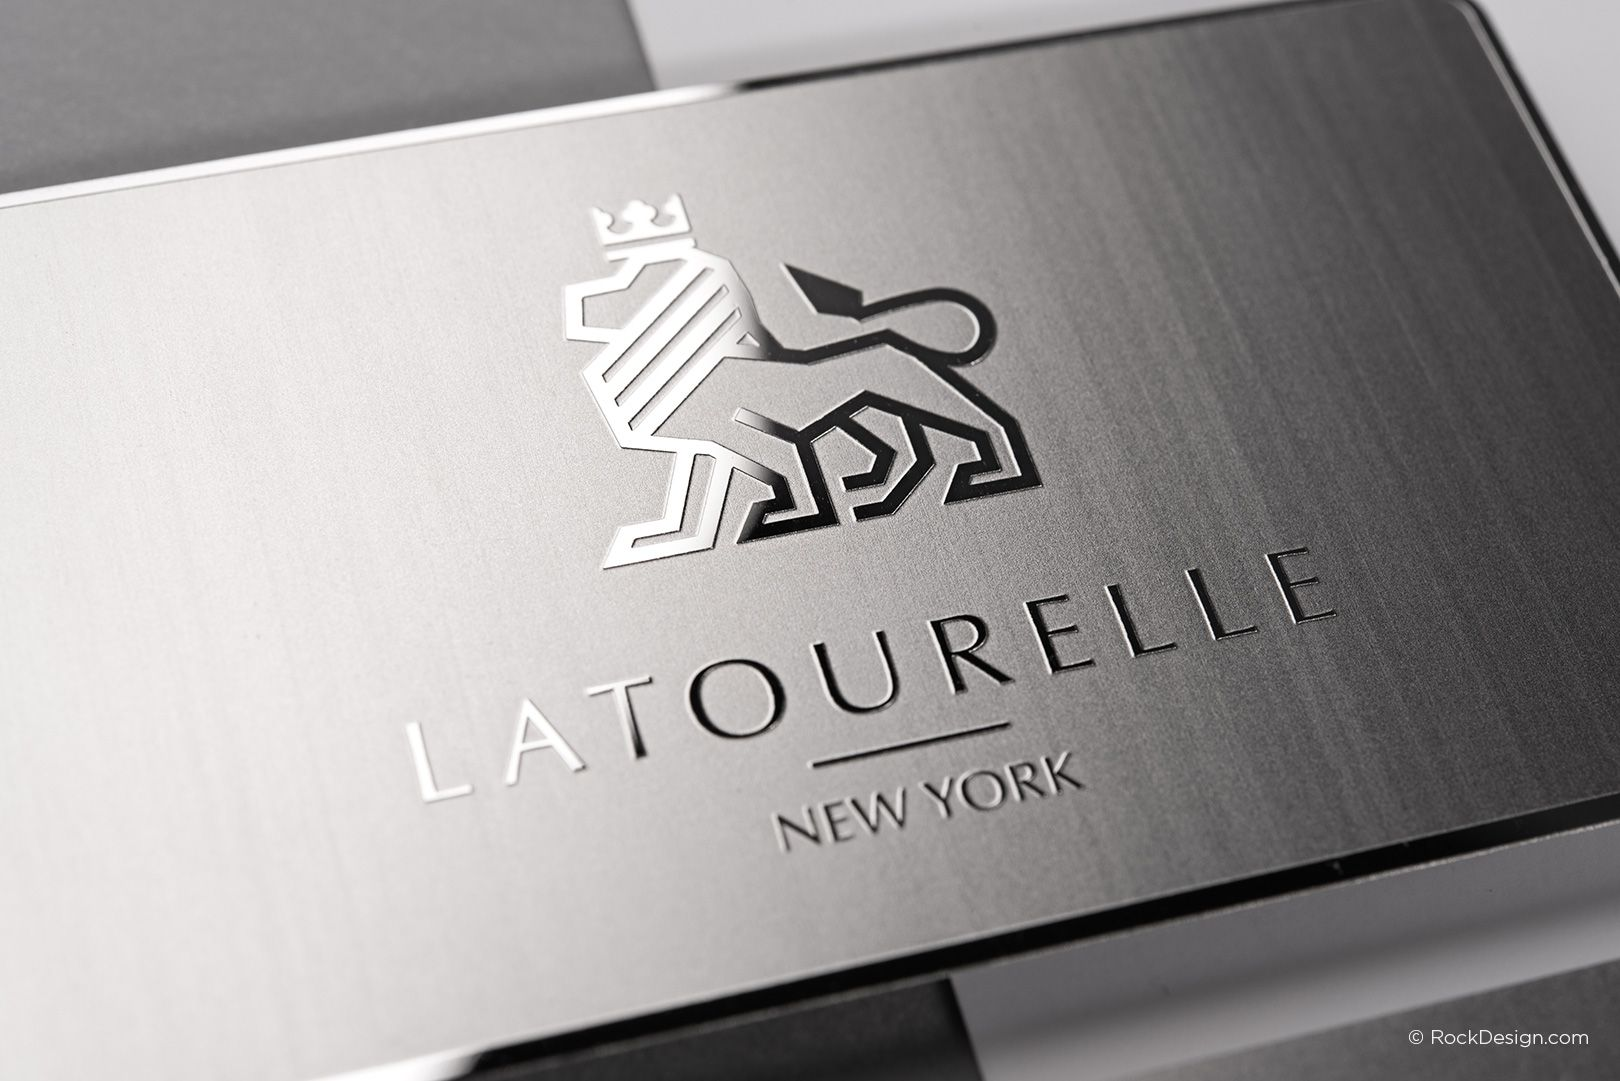 Sophisticated modern stainless steel business card with etching and sophisticated modern stainless steel business card with etching and mirror finish latourelle rockdesign luxury reheart Gallery